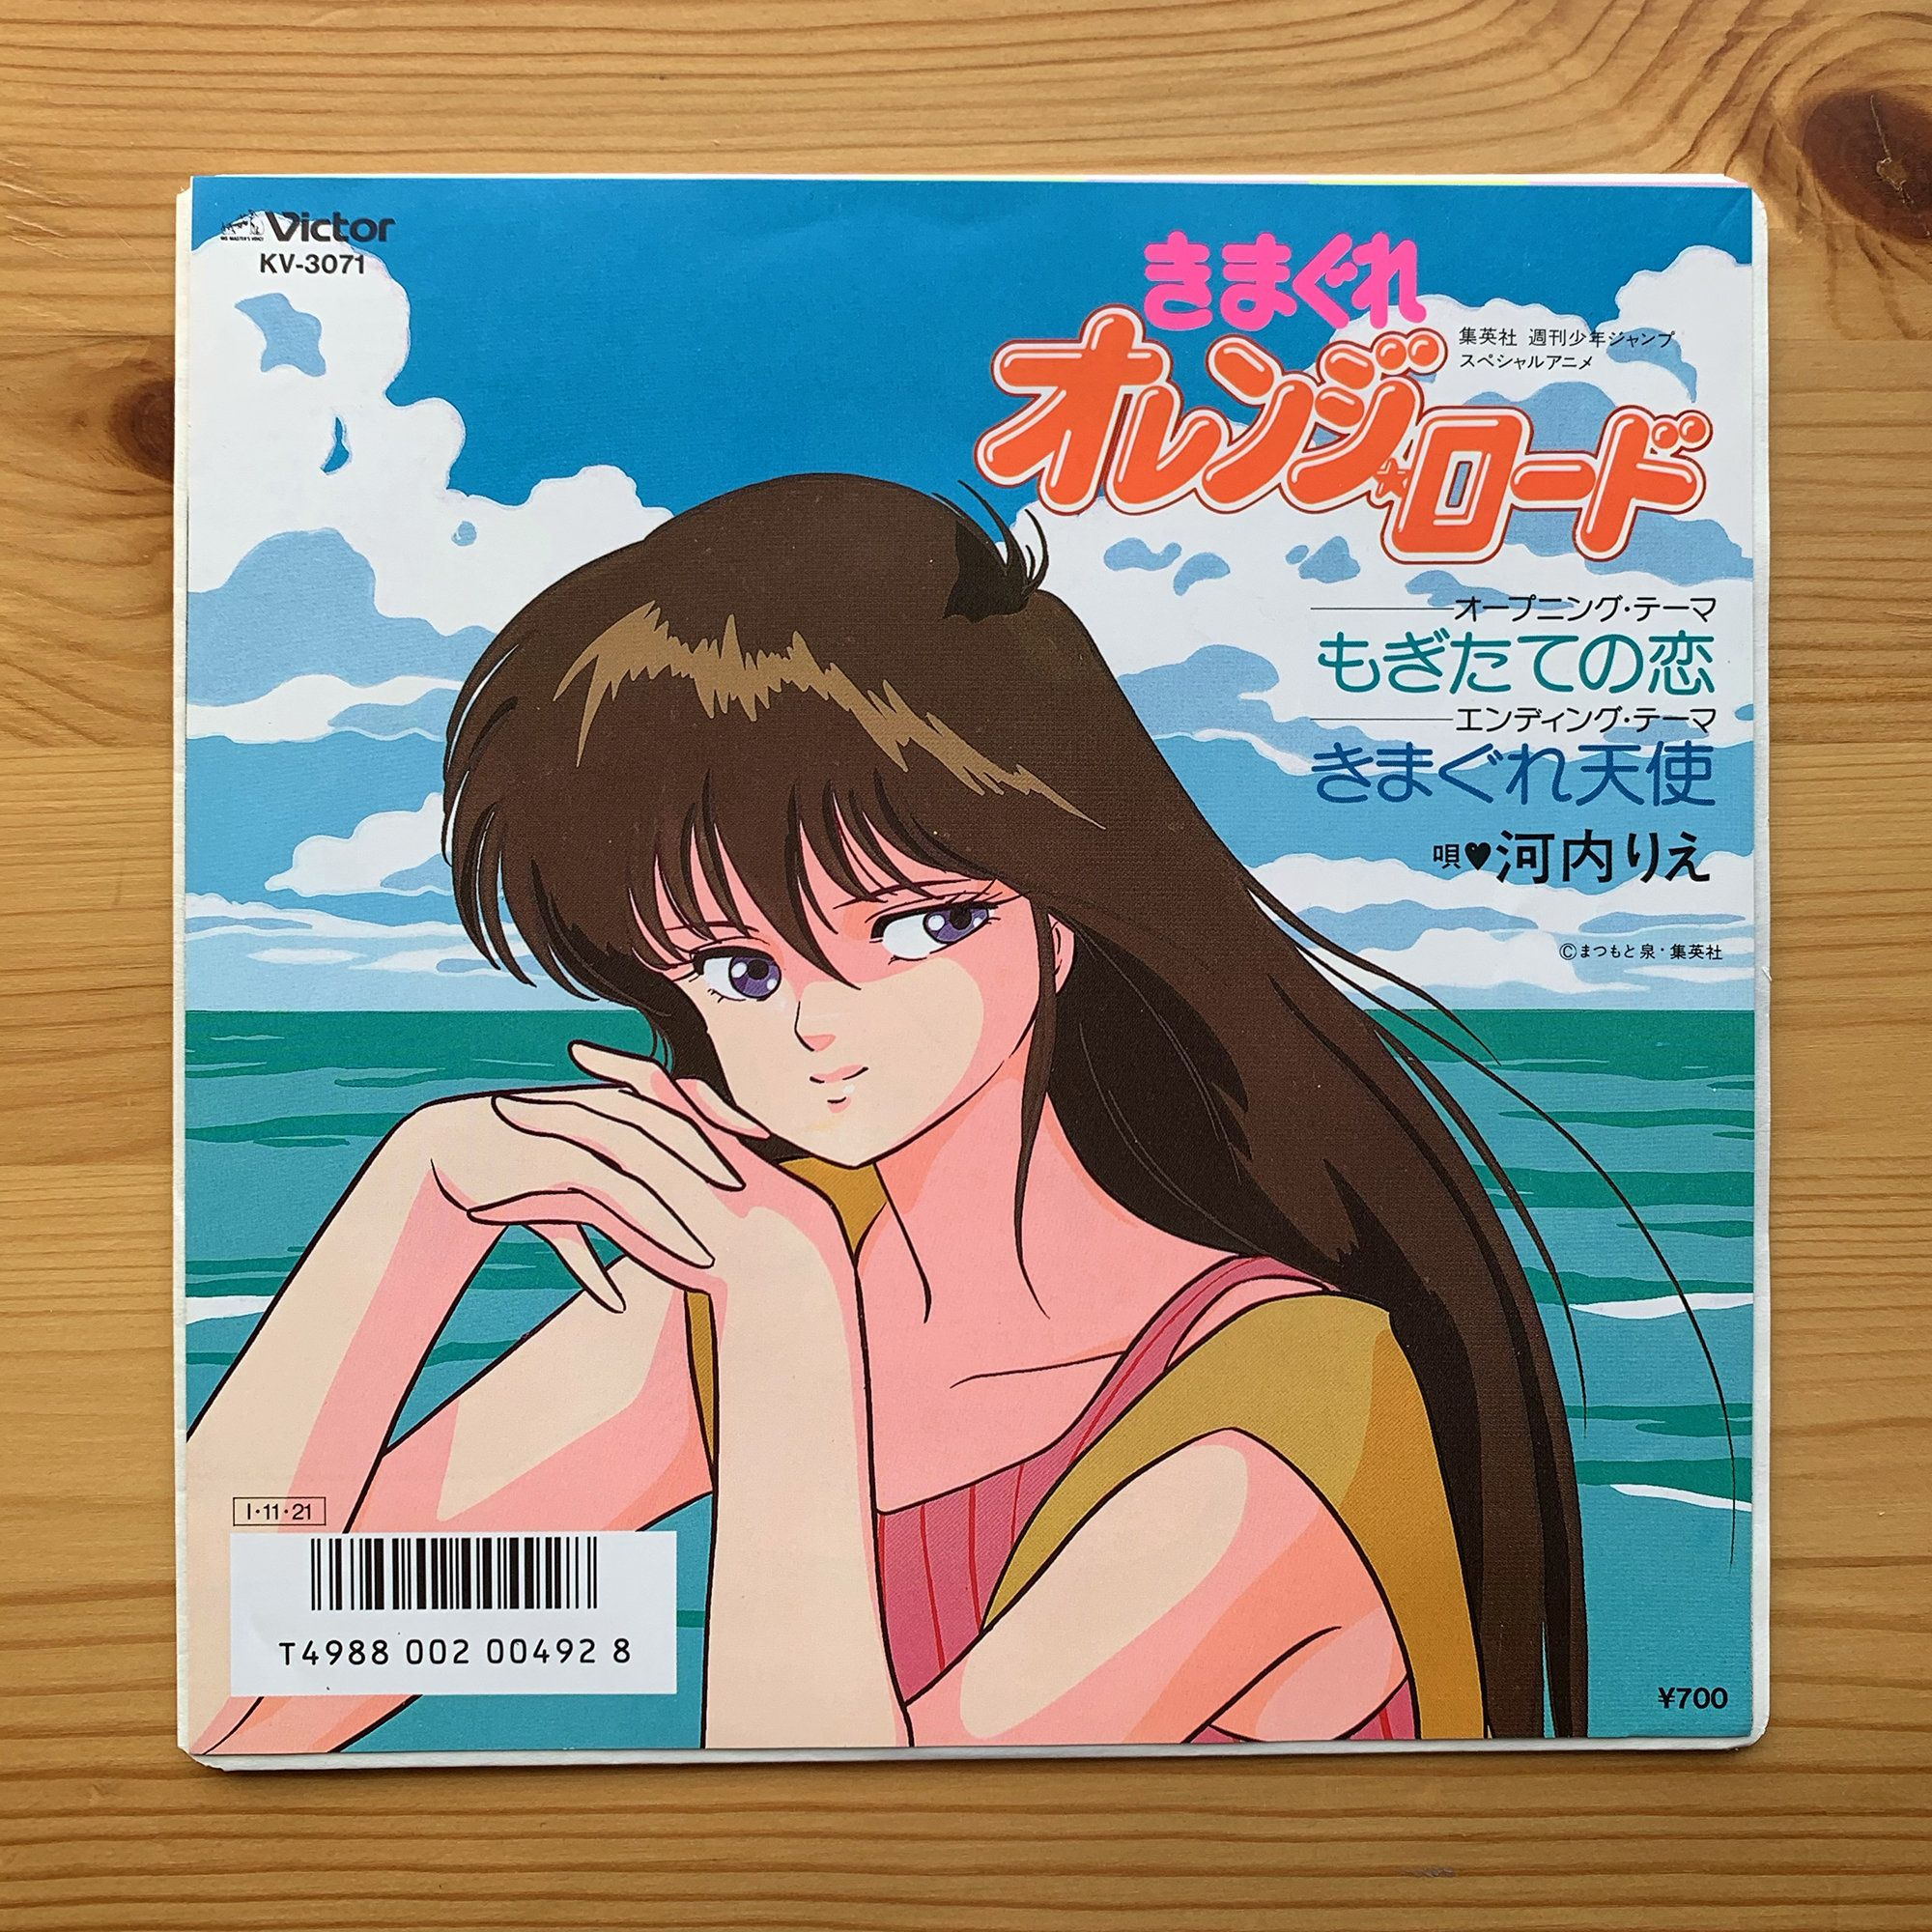 Pin On Kimagure Orange Road Soundtracks